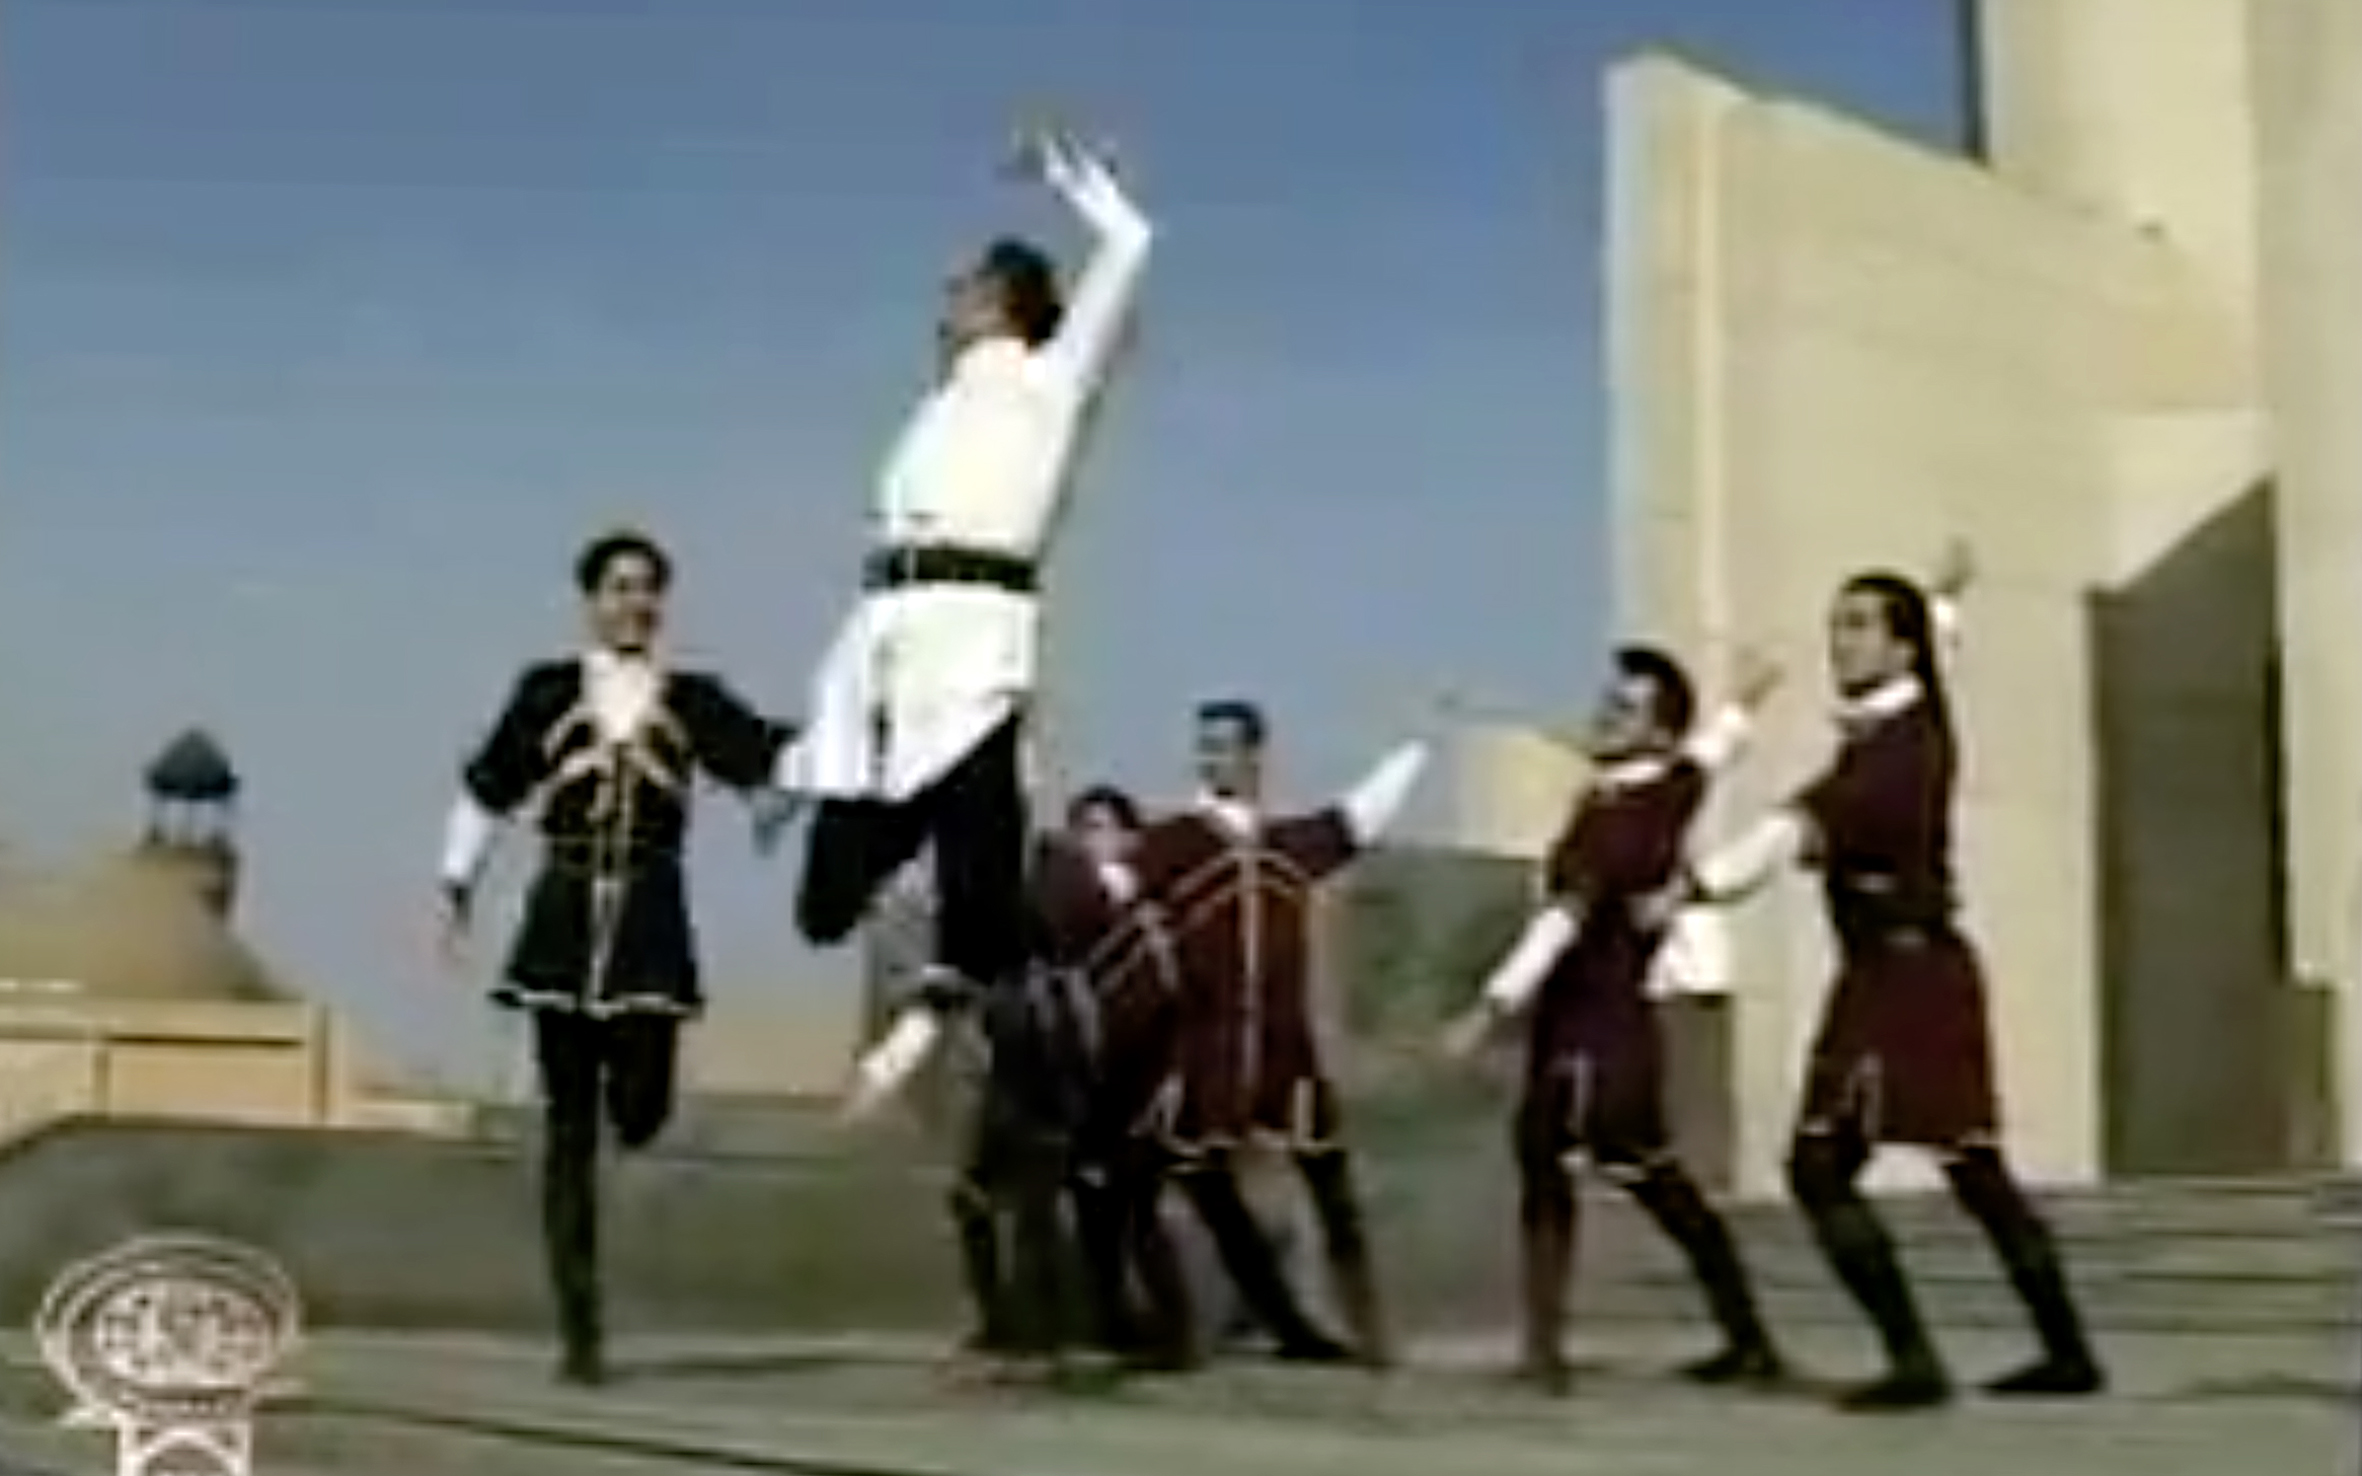 50.Azari / Iran - Azari performed by the Azerbaijani people of Azerbaijan and Iranian Azerbaijan in north west of Iran. These dances feature quick tempo, but also sometimes very delicate movements of hands, and steps.